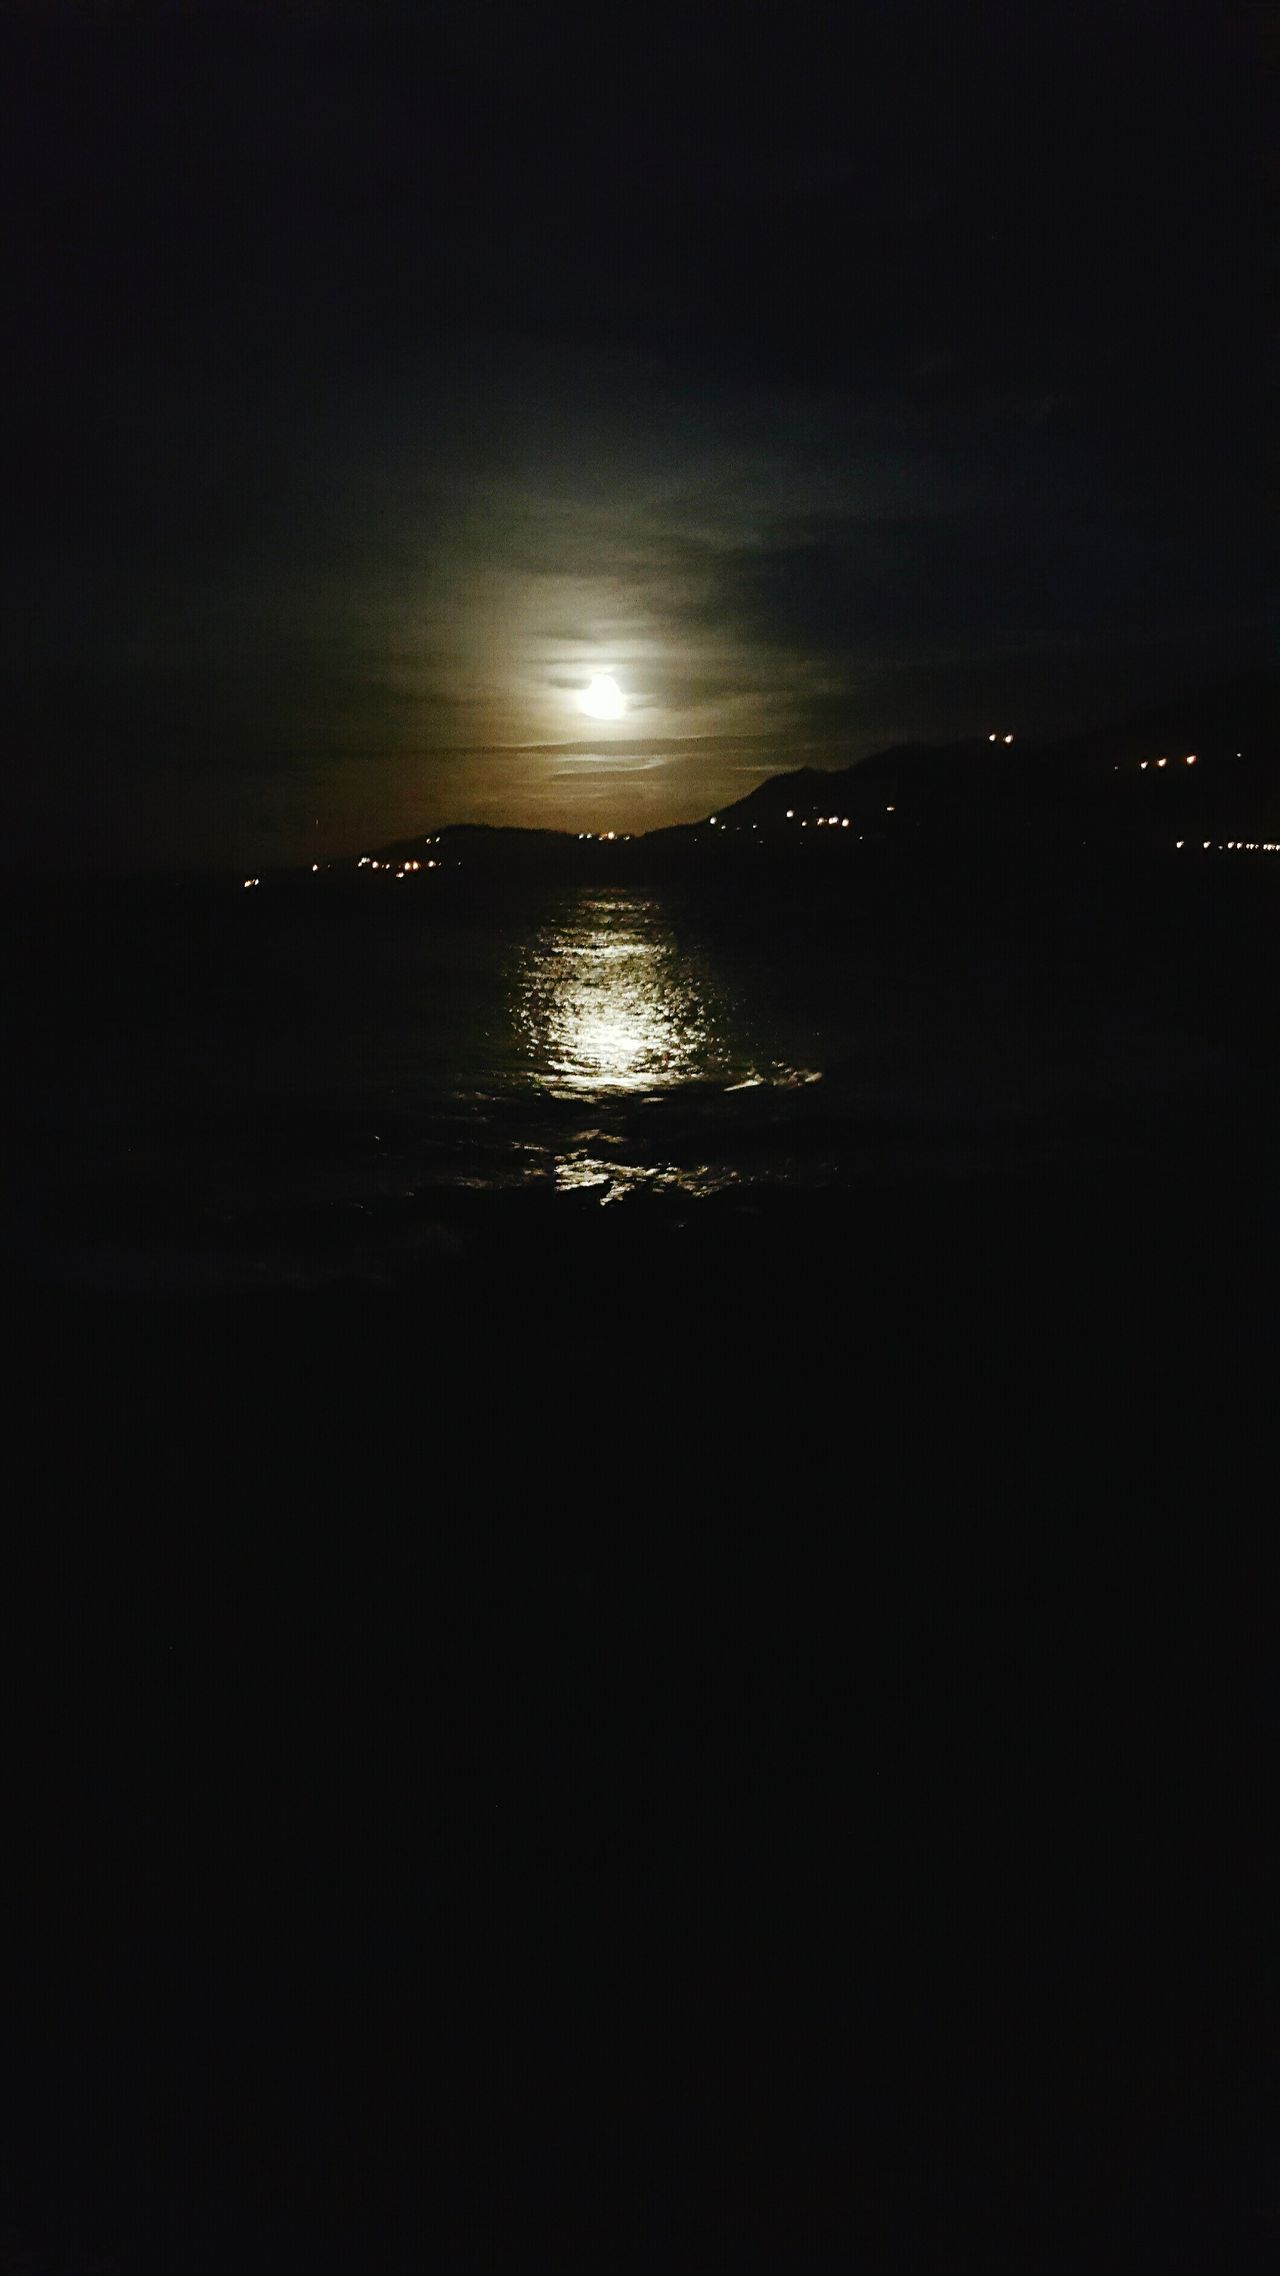 Moon Reflection Nature Water Sky Night Space And Astronomy Beauty In Nature Sea No People Scenics Outdoors Moon Astronomy Corse Travel Destinations Eyembestpics EyeEm Best Edits EyeEm Best Shots First Eyeem Photo EyeEm Gallery Beauty In Nature Landscape Nature Mountain